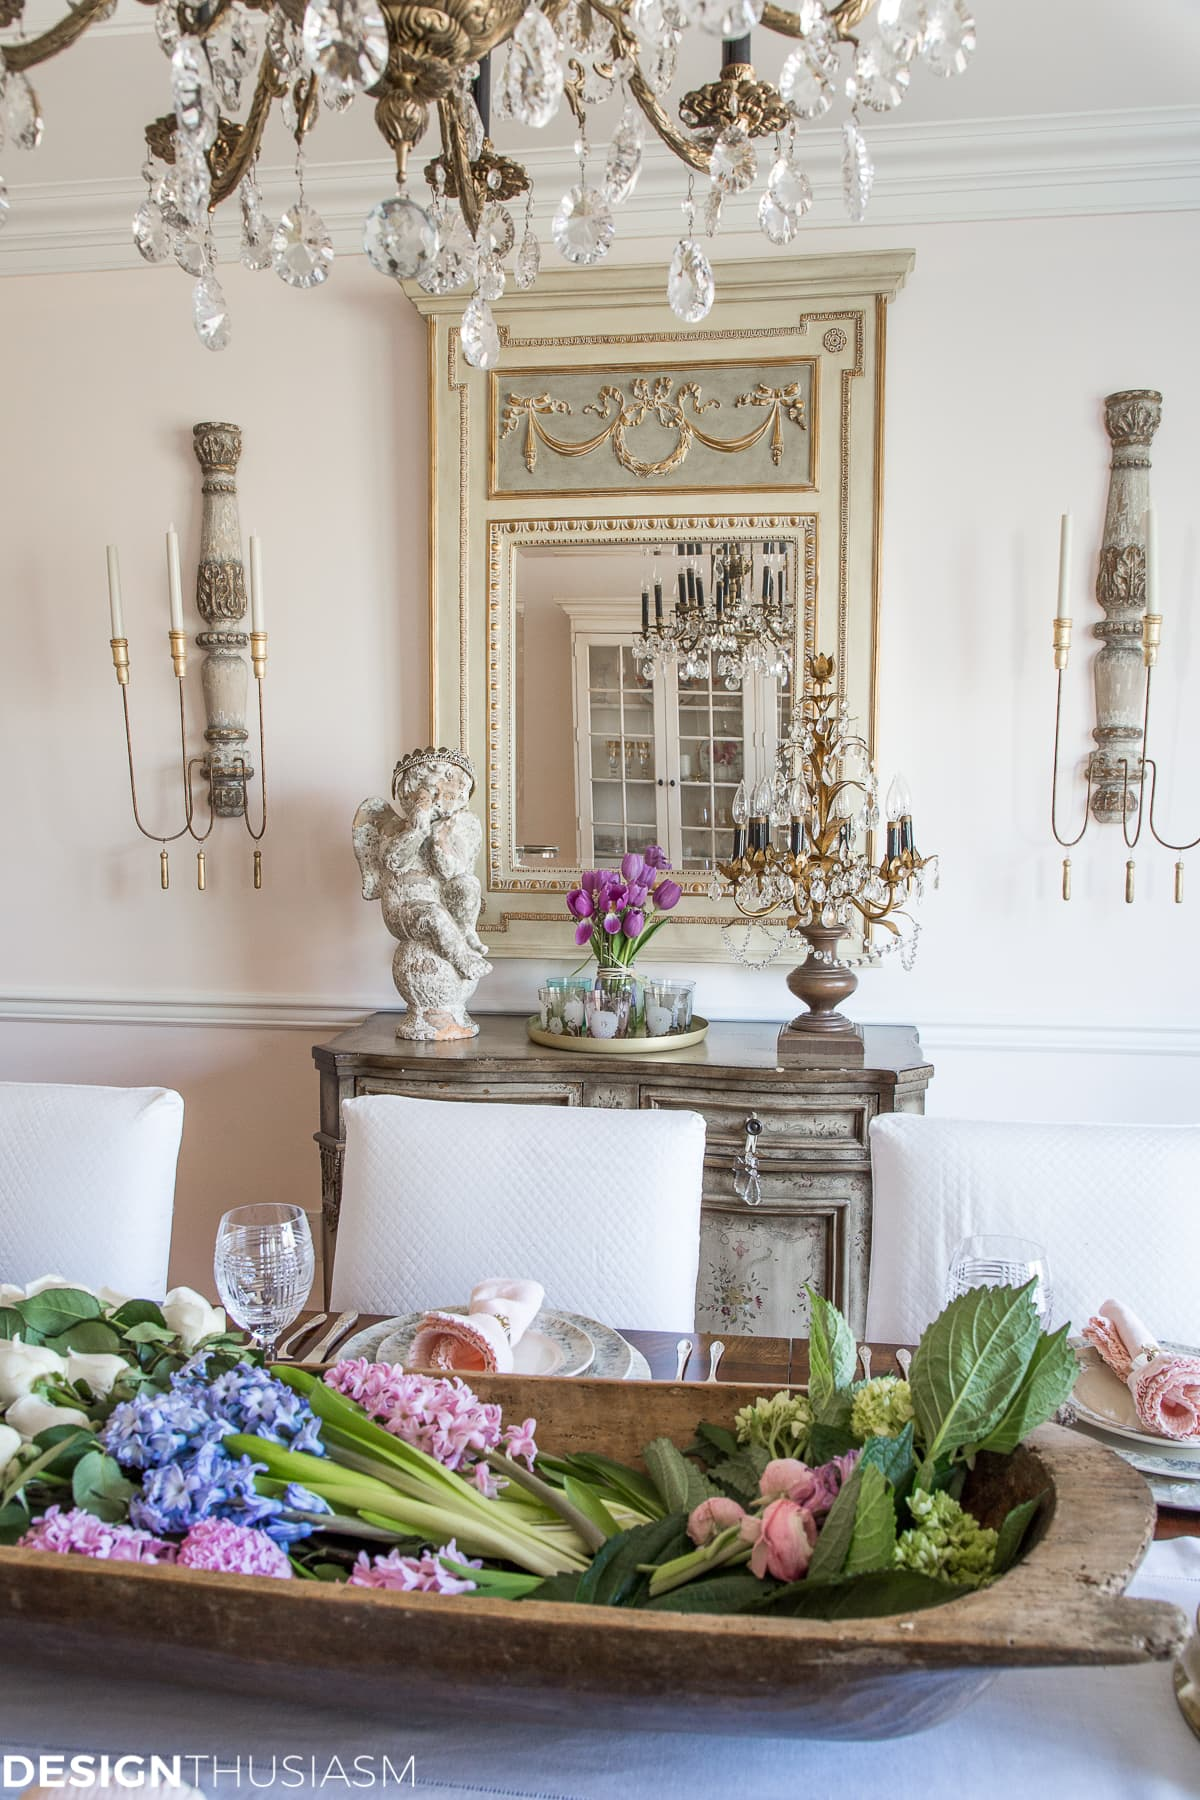 Spring Decorating Ideas Dining Room - designthusiasm.com